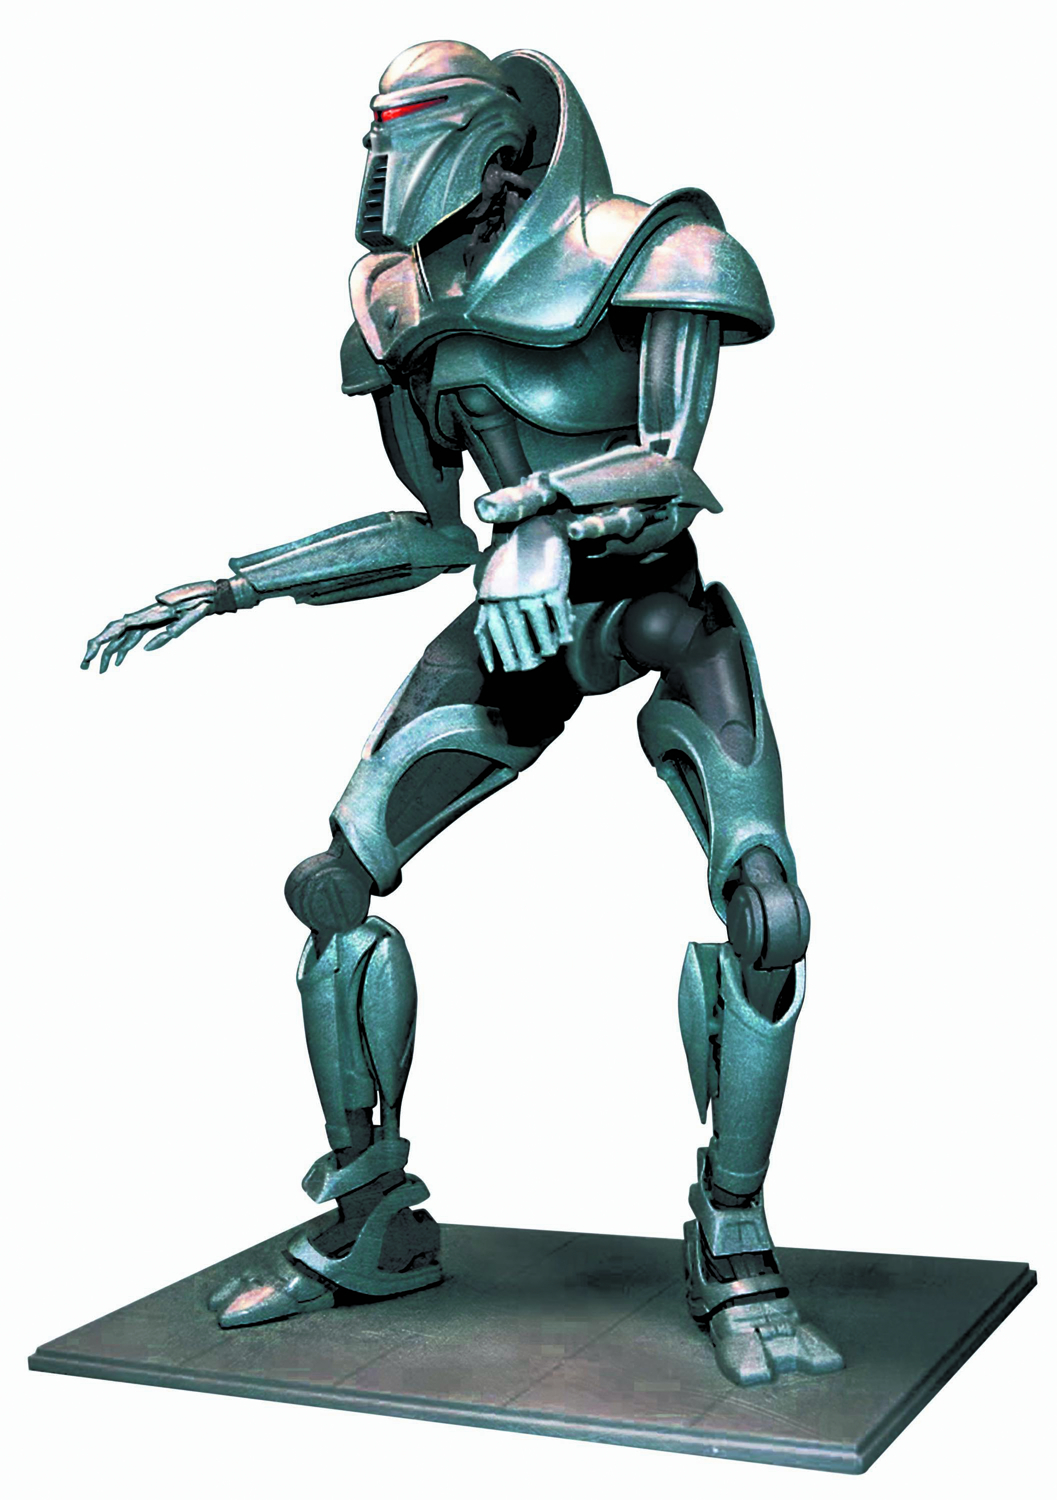 BSG CYLON CENTURION MODEL KIT